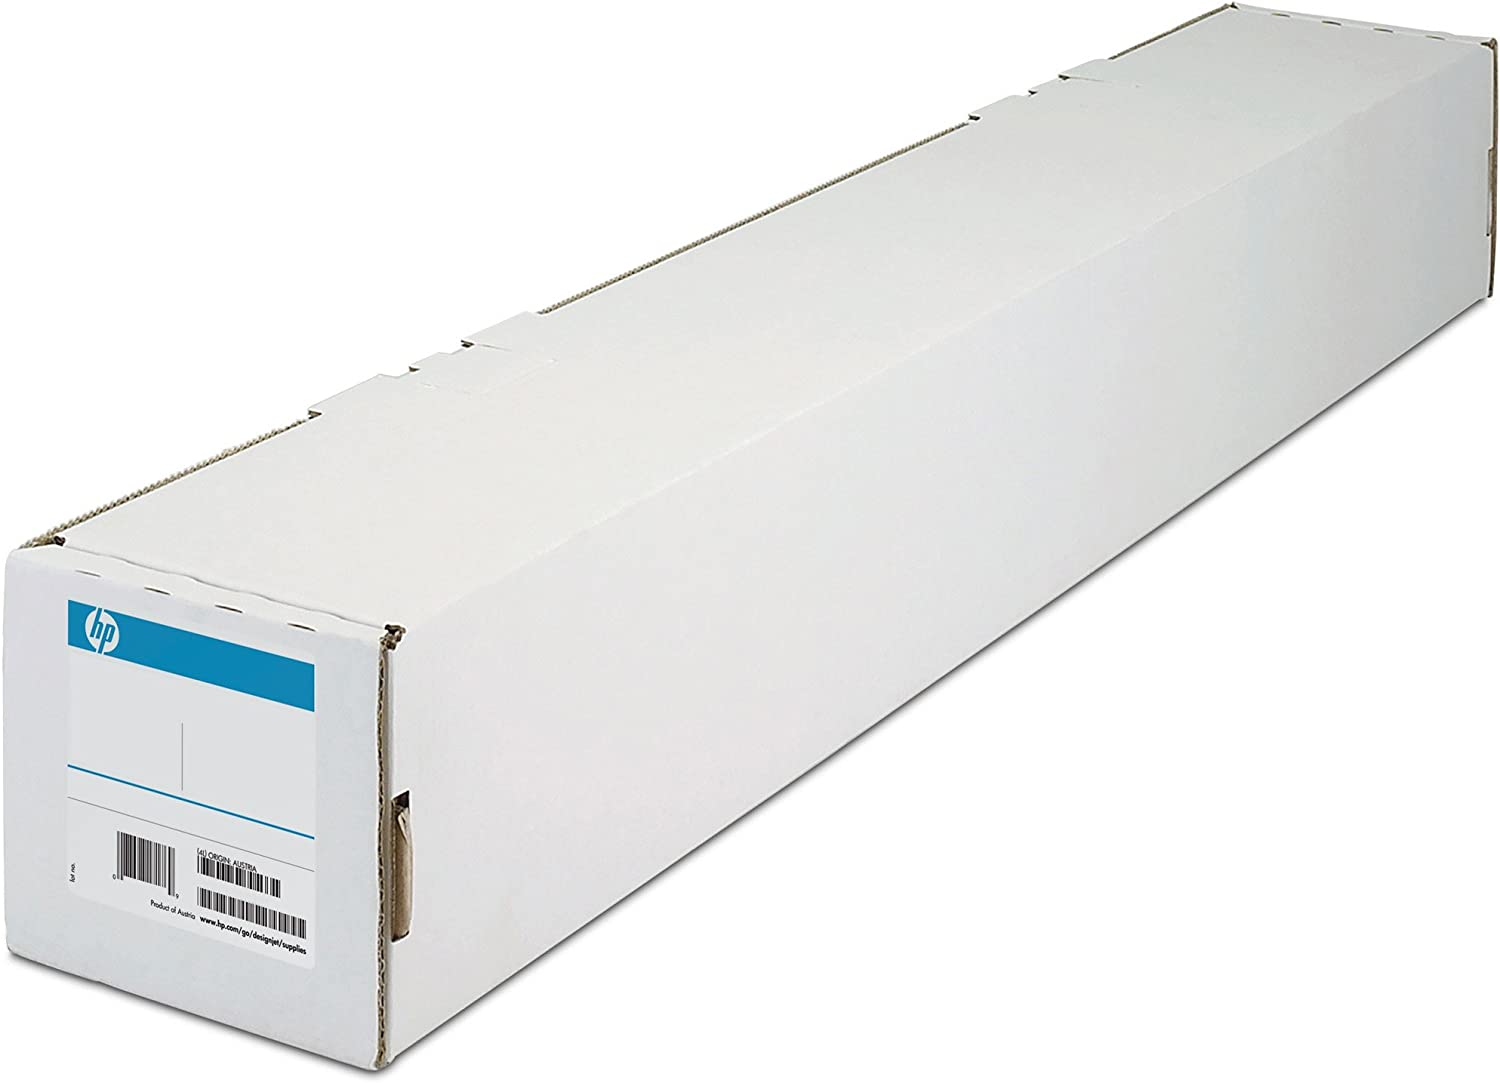 HP Canvas - for Inkjet Print - 24 X 50 Ft - Matte Textured - 97 Brightness - 1 Roll - Bright White E4J54B